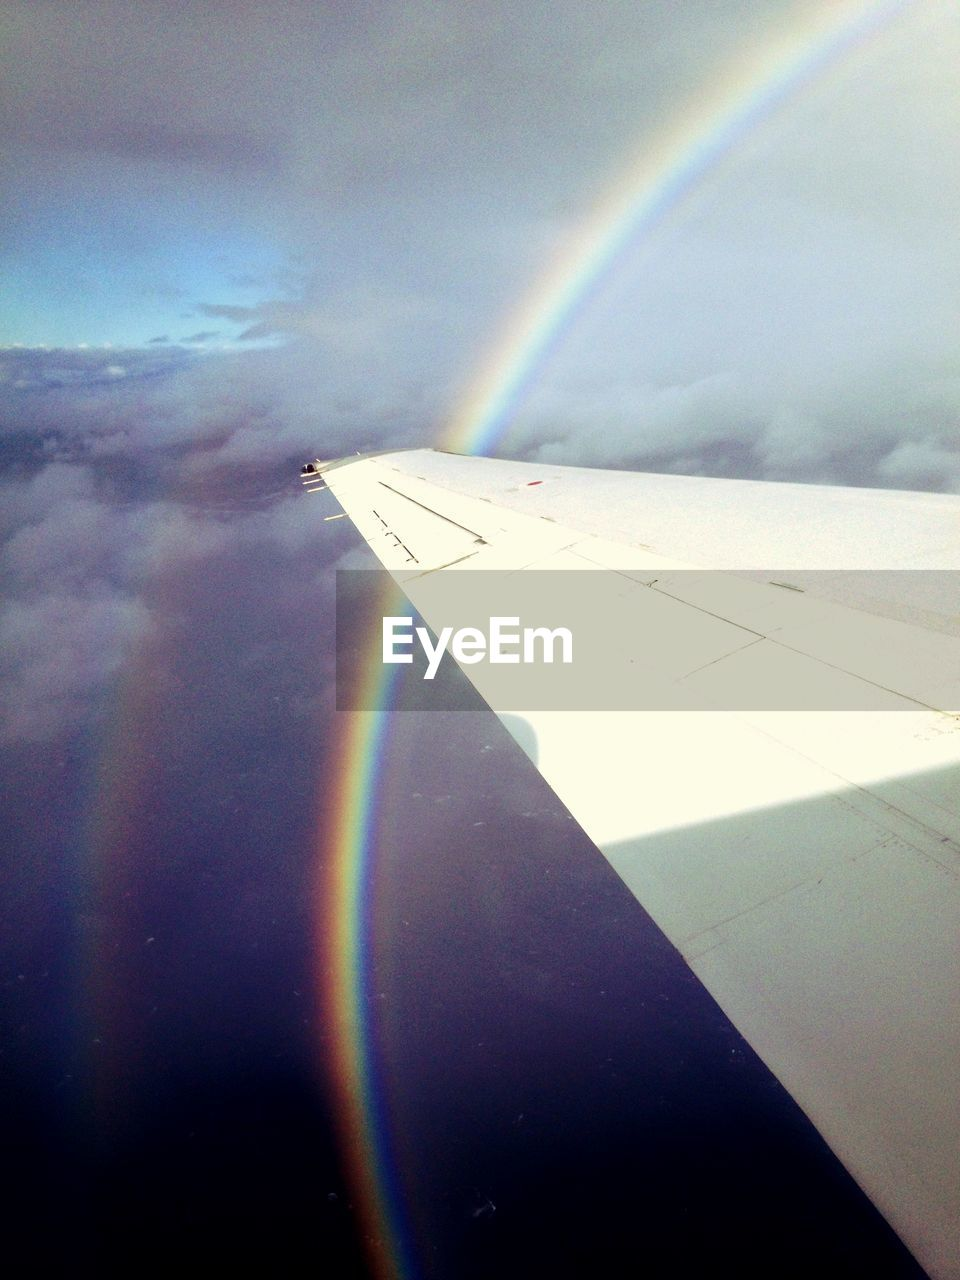 Cropped image of airplane against rainbow in cloudy sky